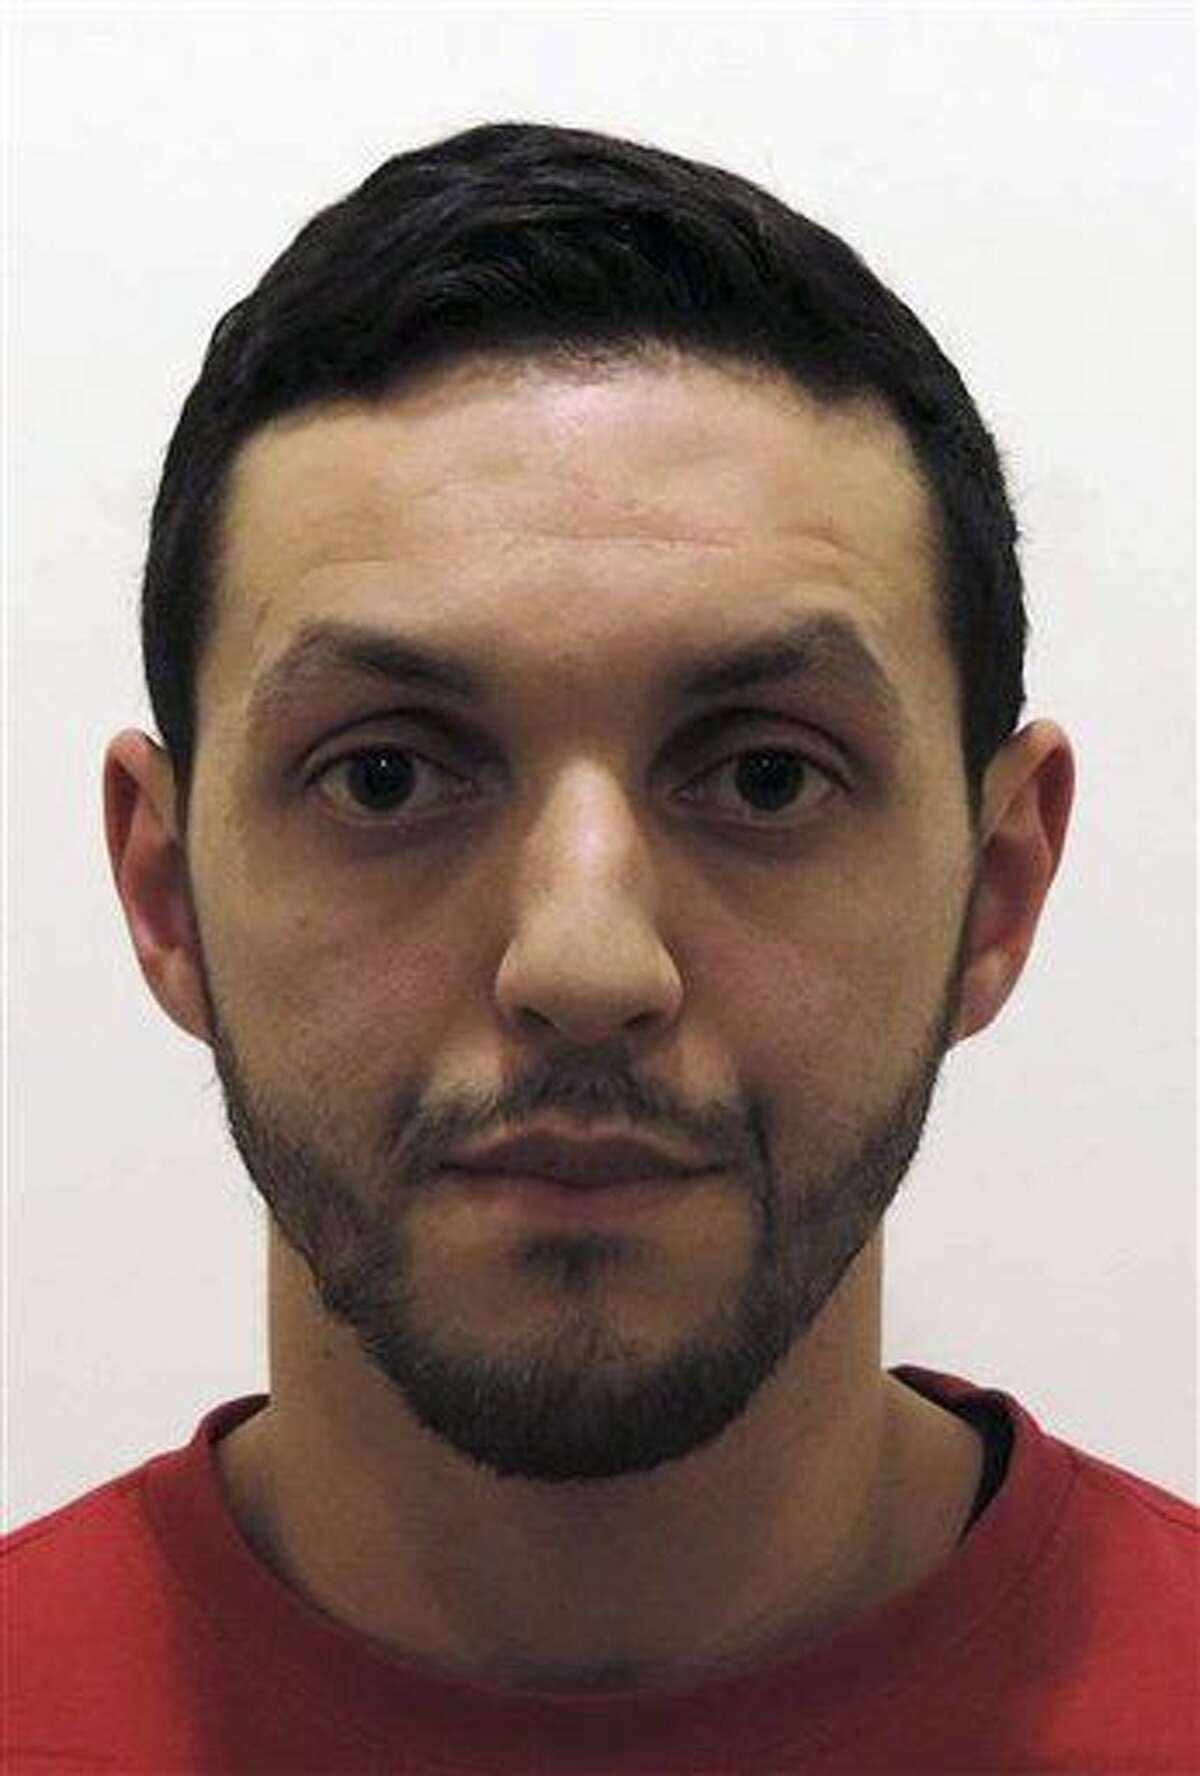 FILE - This is an undated photograph provided by Belgian Federal Police shows Mohamed Abrini. Belgian authorities say several arrests have been made in relation to the Brussels attacks. The prosecutor's office said Friday April 8, 2016 that it made